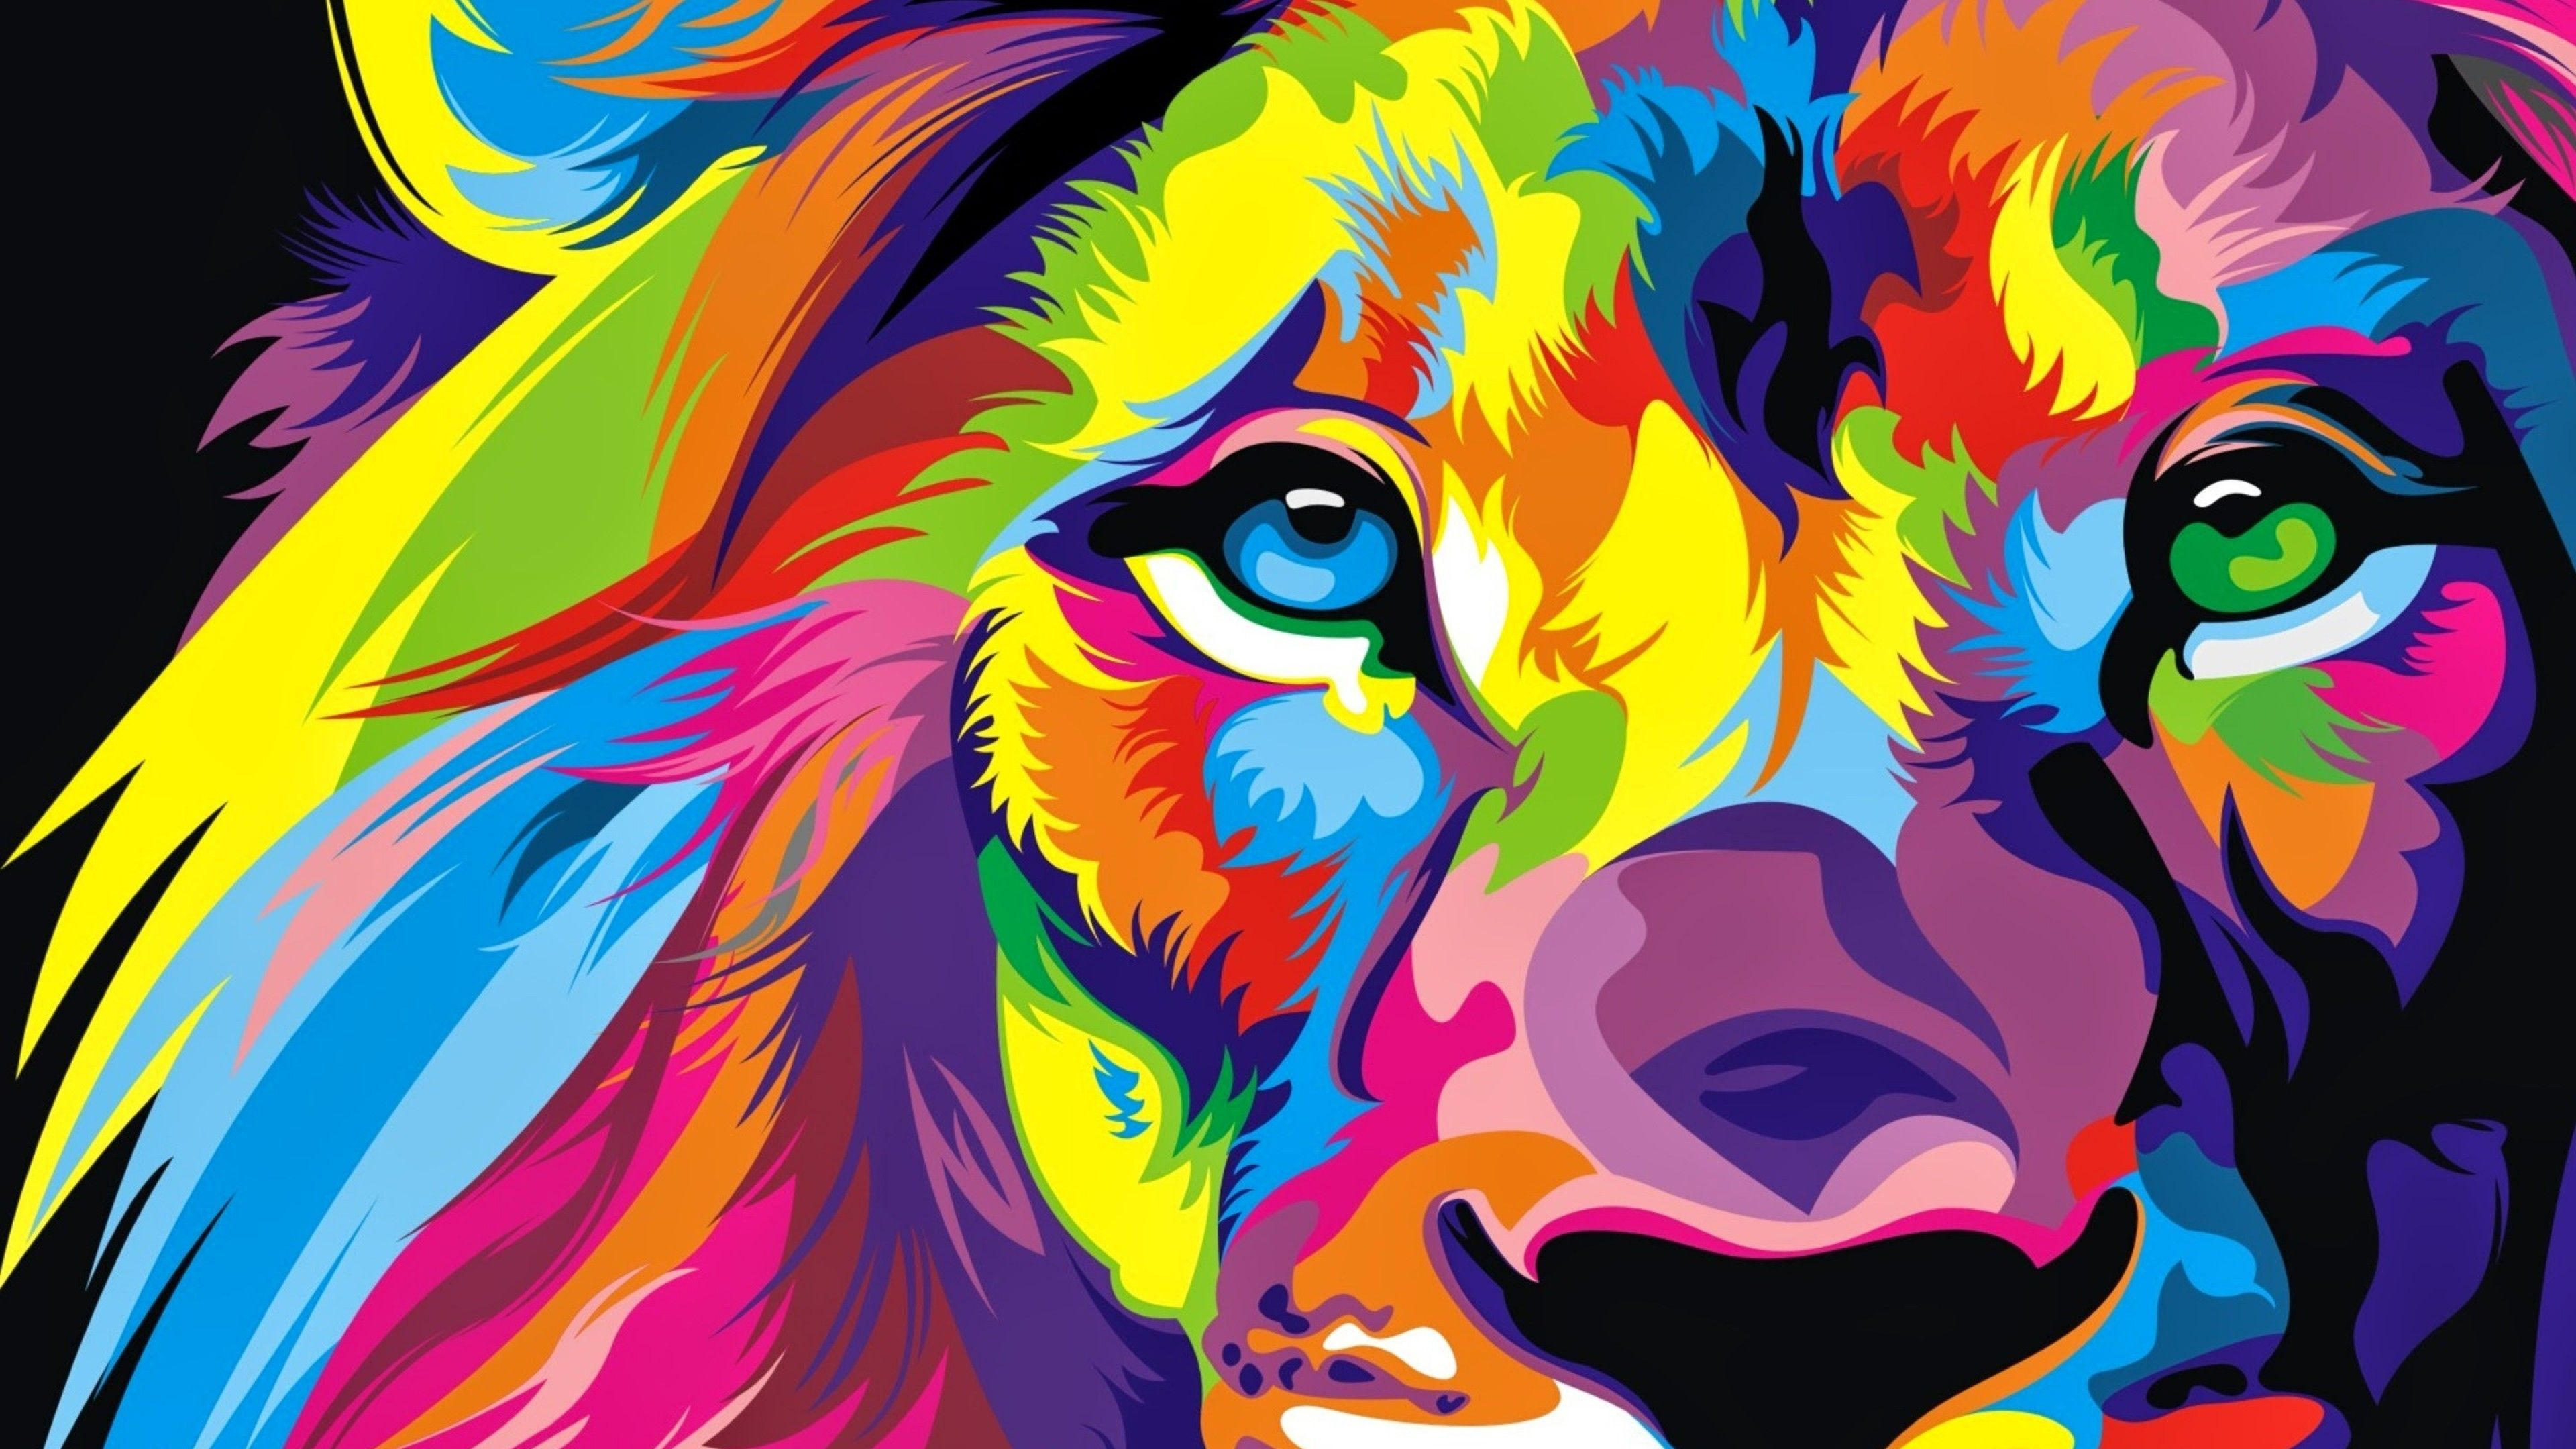 3840x2160 Download Full Hd Colourful Lion Artwork Wallpaper 4k Ultra Hd Hd Lion Artwork Colorful Lion Colorful Lion Painting